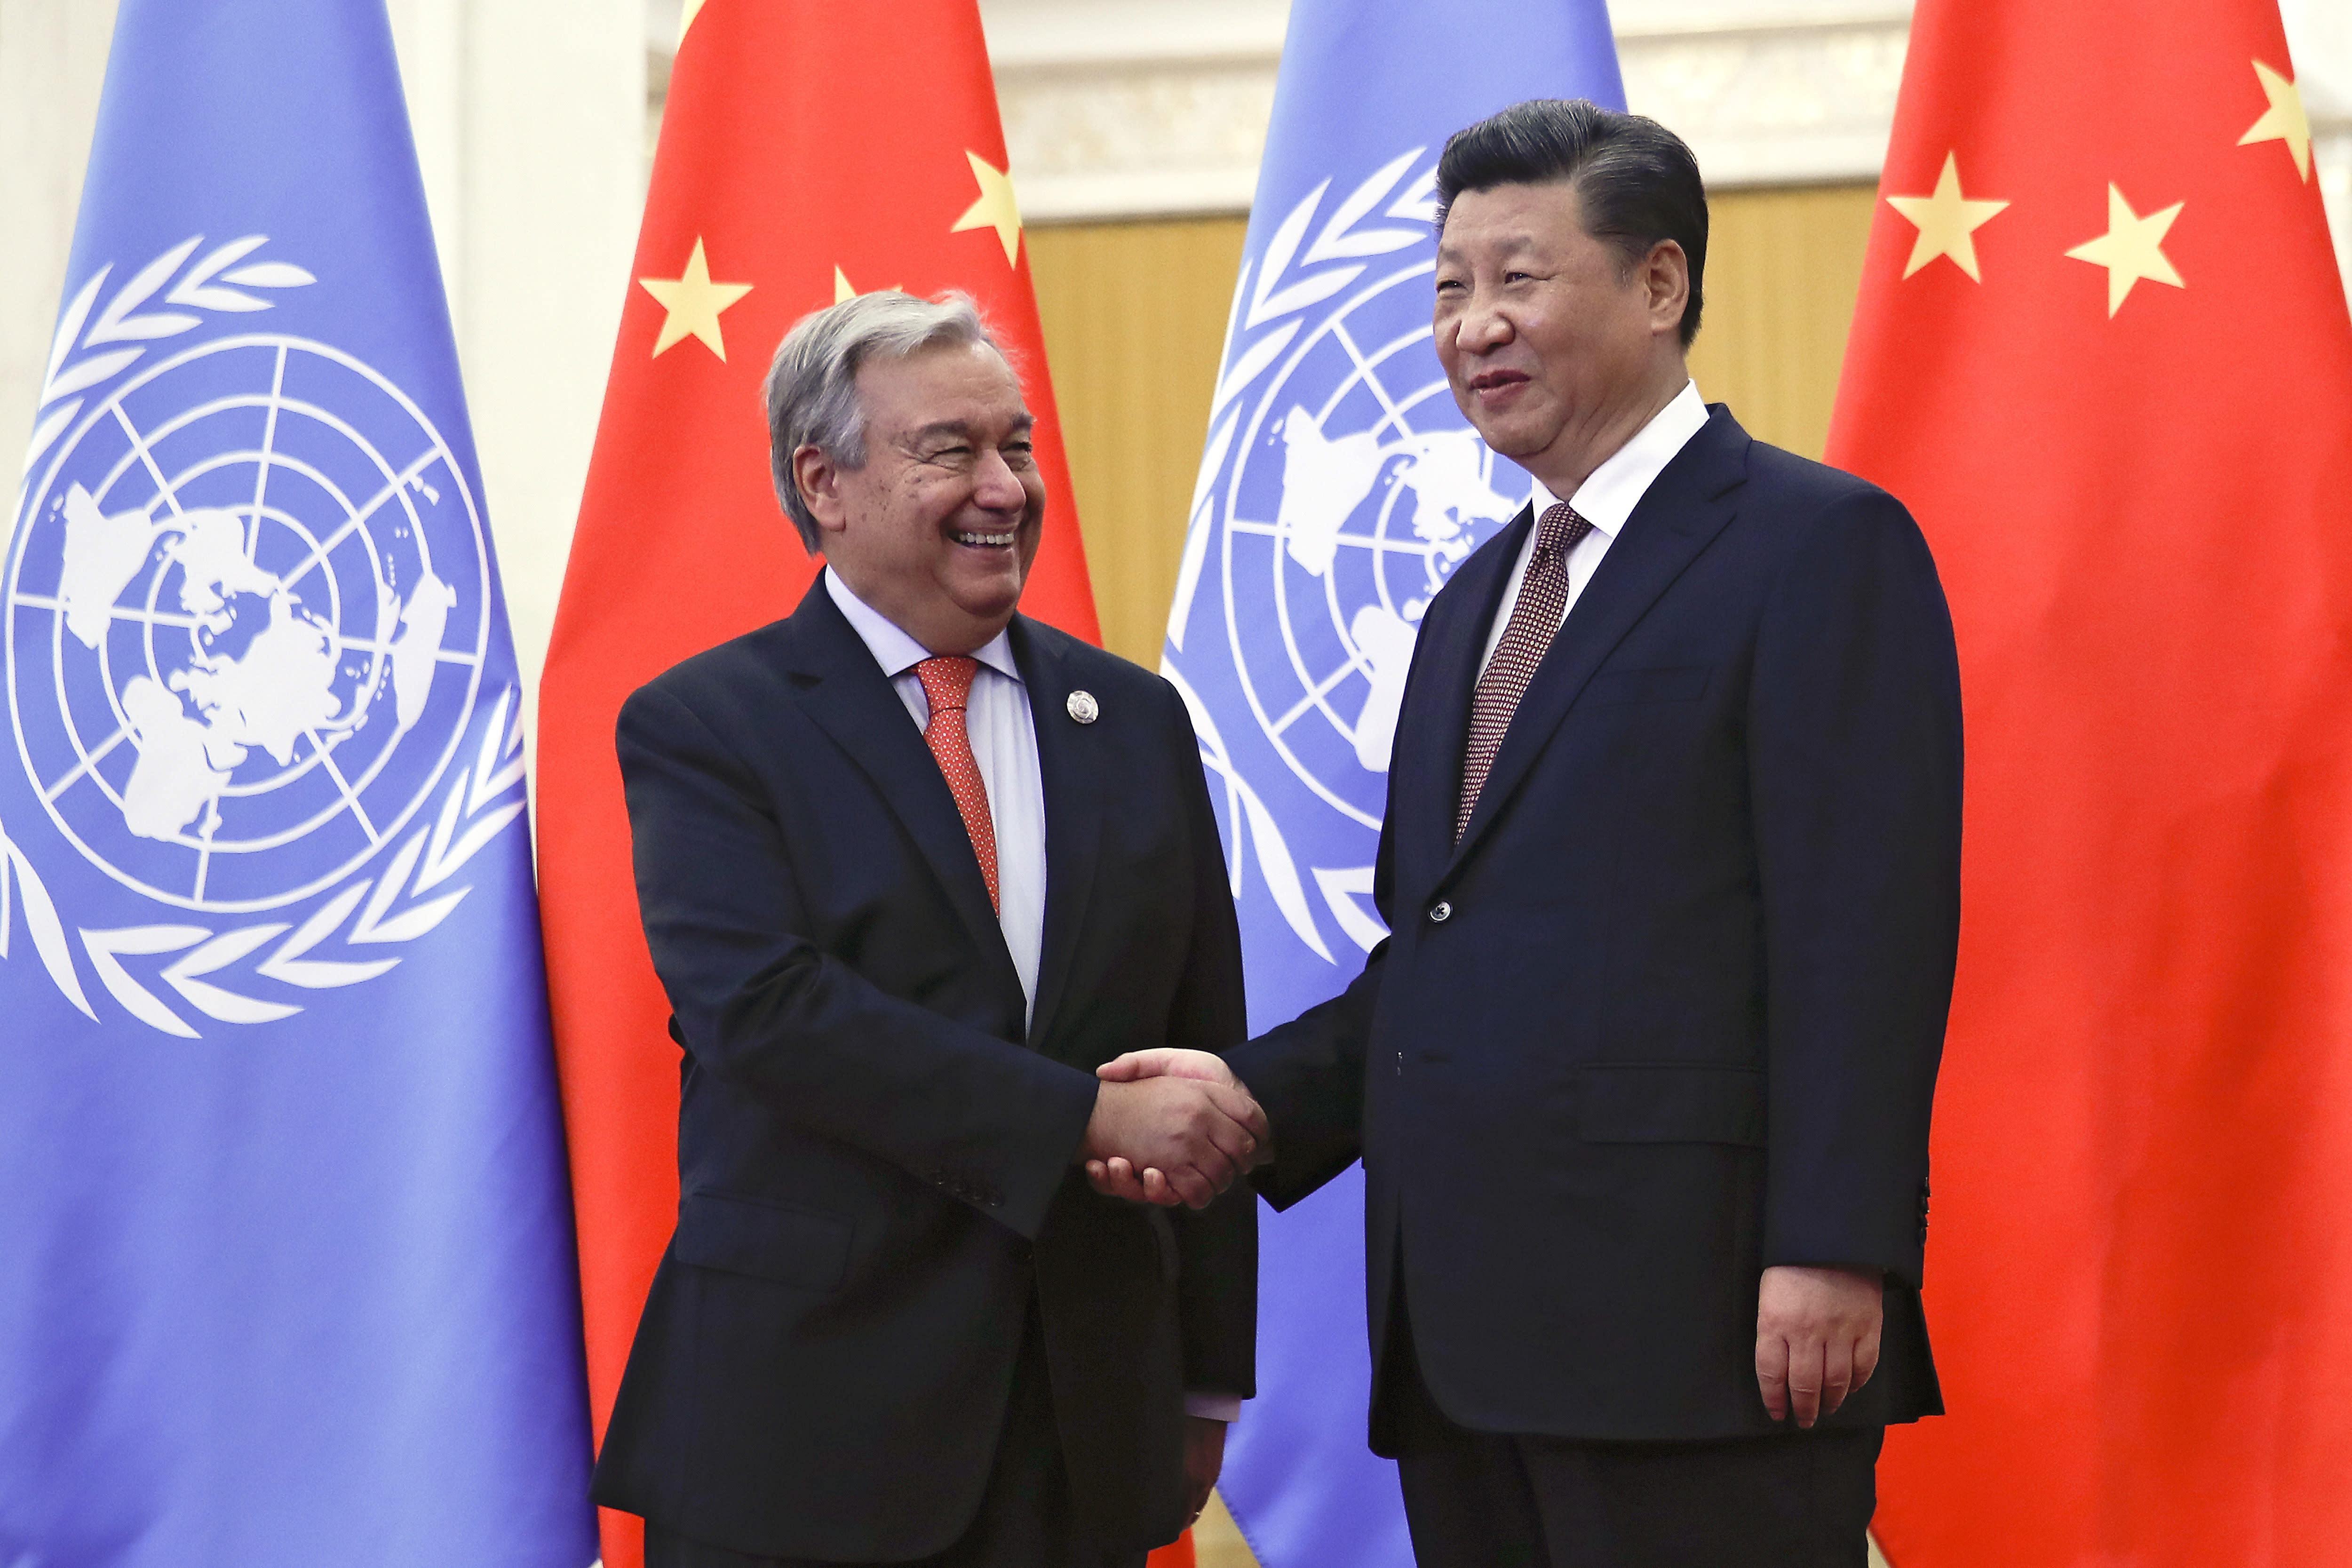 "FILE - In this Sept. 2, 2018 file photo, United Nations Secretary-General Antonio Guterres, left, shakes hands with Chinese President Xi Jinping before their bilateral meeting at the Great Hall of the People in Beijing. The descriptions that China's state media rolled out ahead of leader Xi's speech Tuesday, Sept. 22, 2020, at the annual gathering of world leaders at the United Nations lauded him as as a ""champion of the U.N. ethos,"" and commentaries laid out his expectations and plans as he prepared for virtual meetings with his colleagues at the U.N. General Assembly. (AP Photo/Andy Wong, Pool, File)"